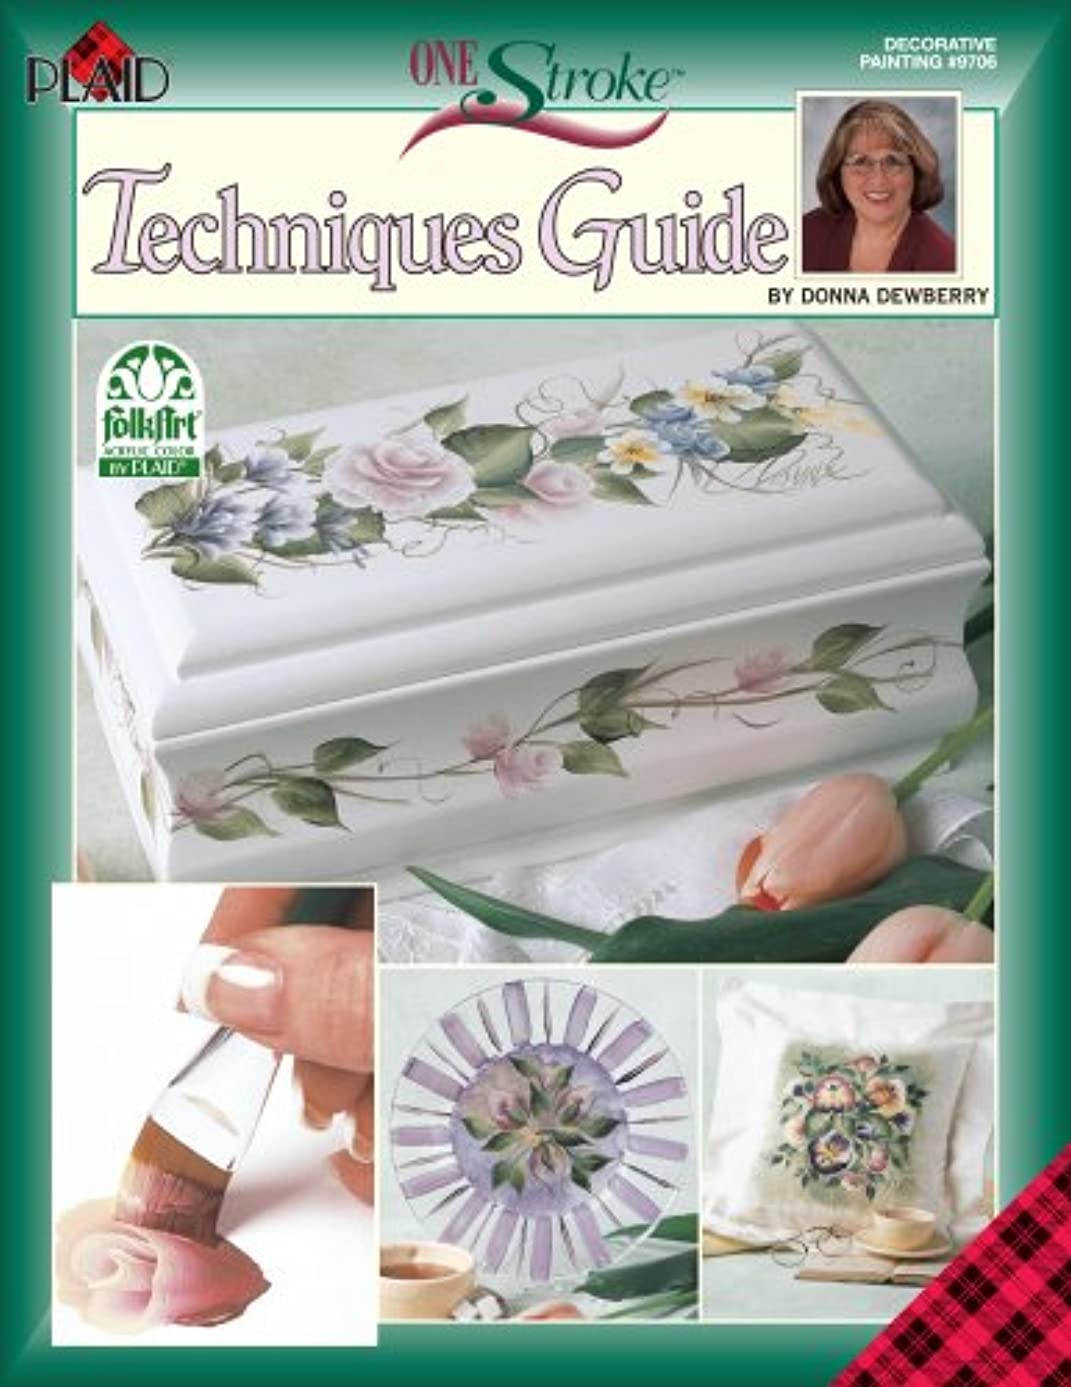 One Stroke Technique Book, 9706 Decorative Painting